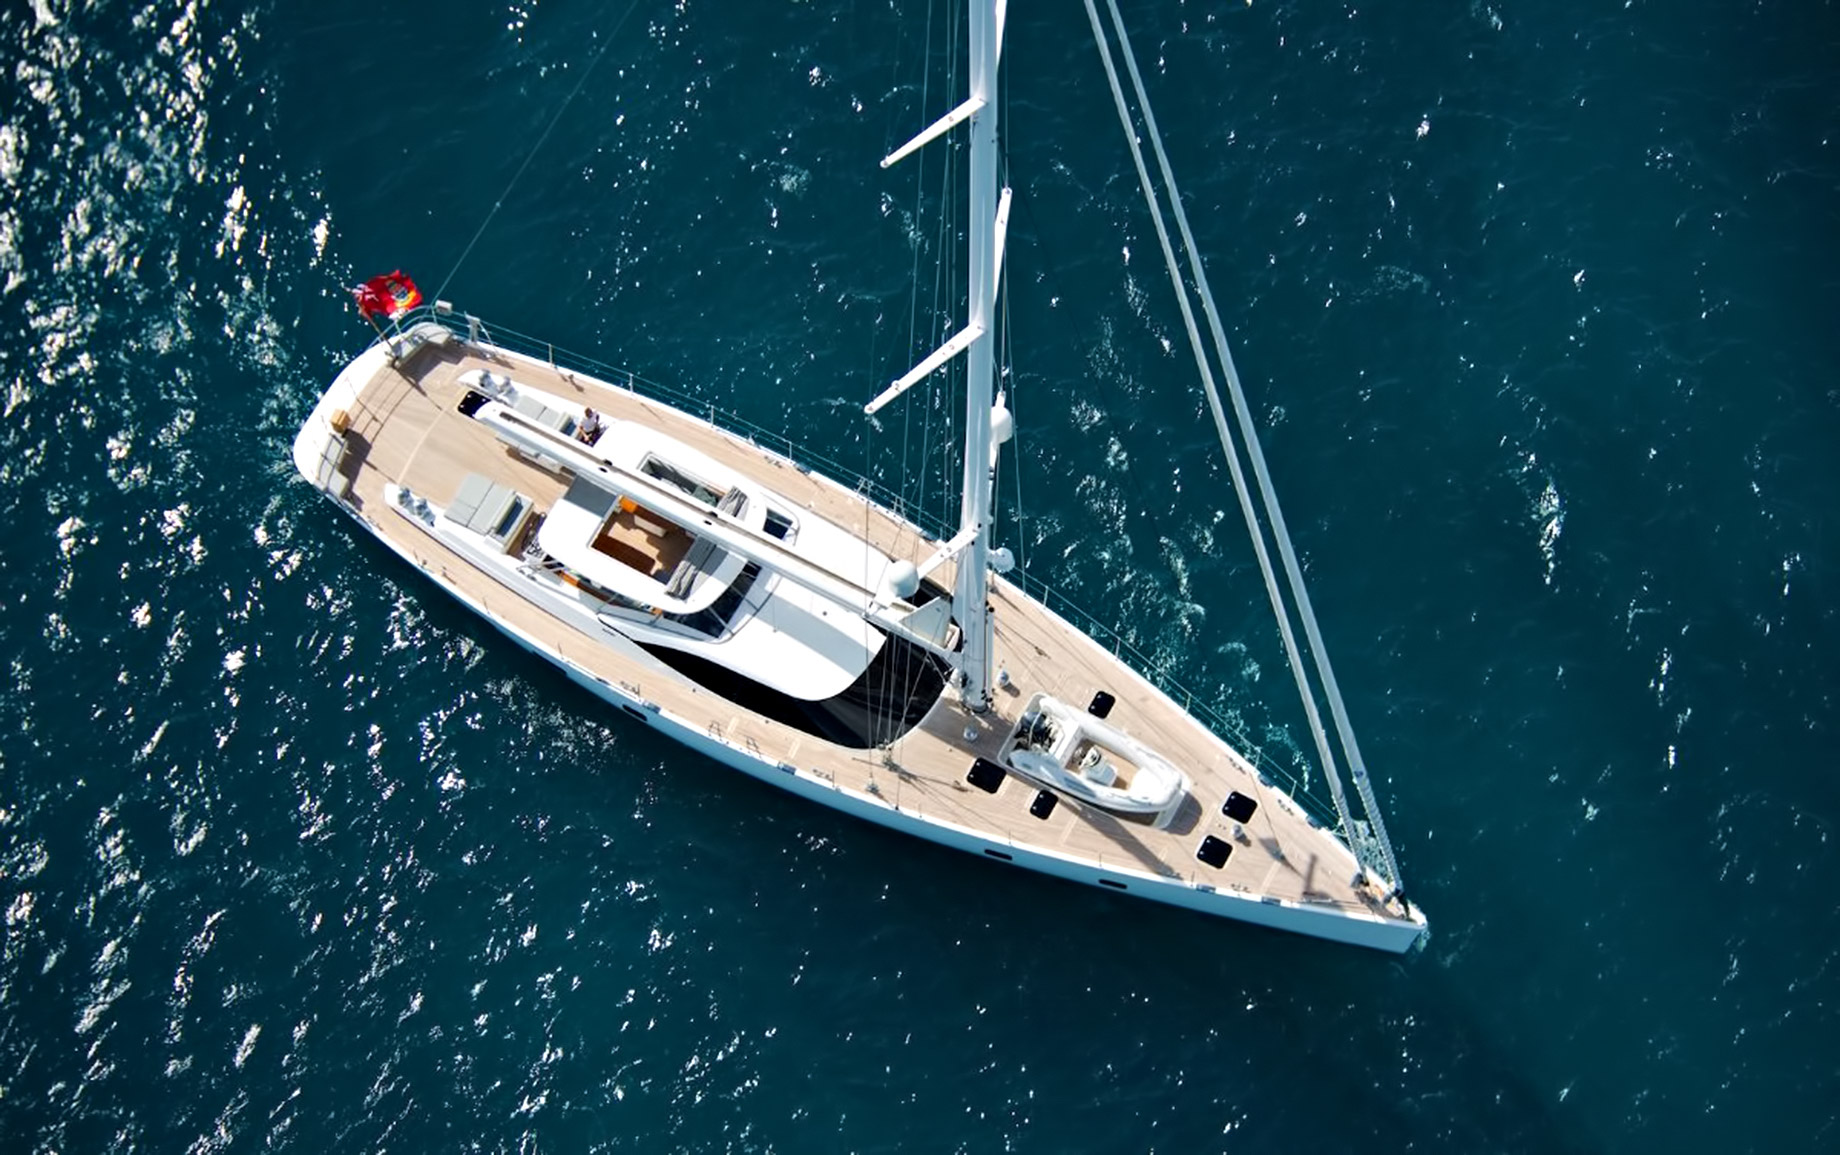 Rare Heritage - Oyster 100 Penelope - Step Inside A Luxury British Sailing Yacht